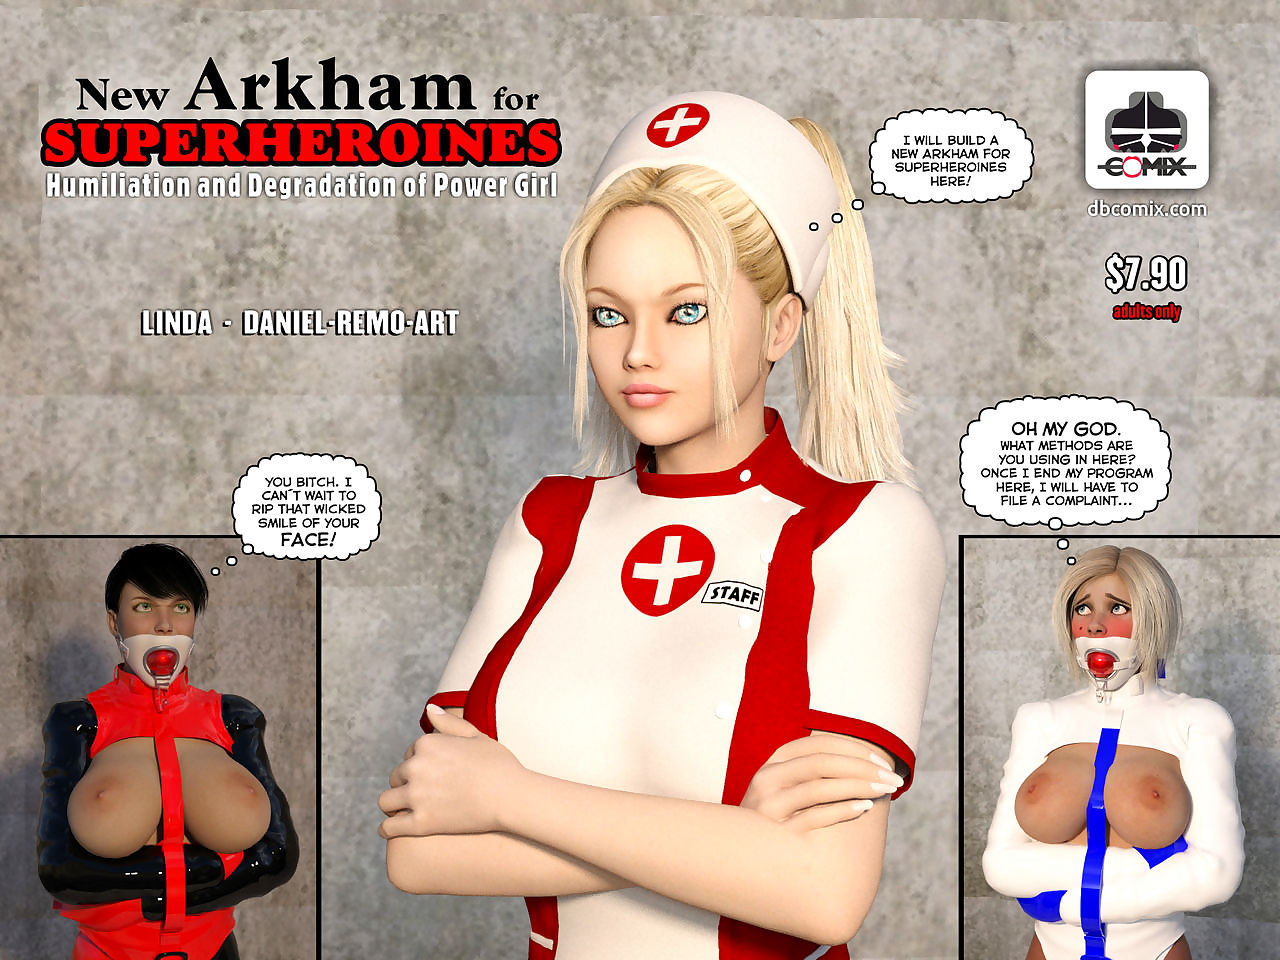 Far-out Arkham Be incumbent on Superheroines 1 - Ignominy coupled with Ignominy be worthwhile for Capacity Unsubtle